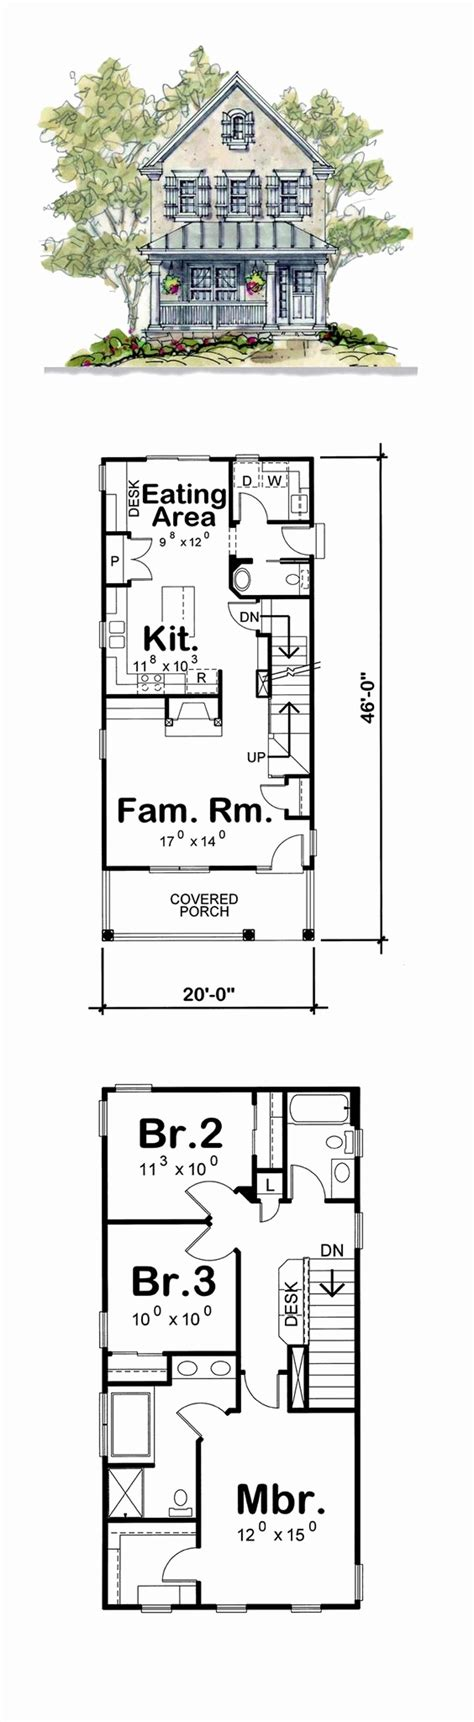 shallow house plans inspirational two story house plans for shallow lots